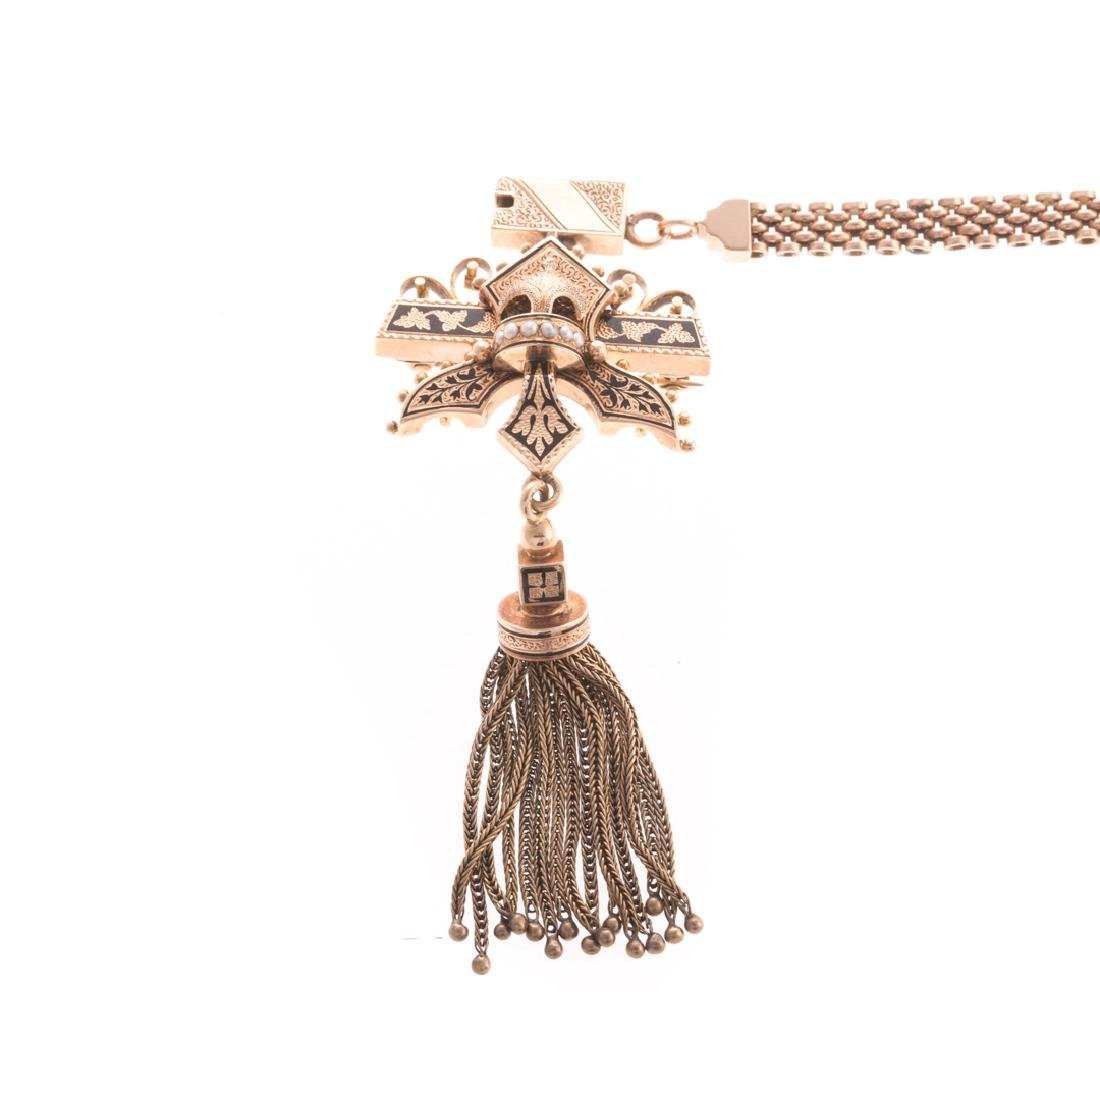 A Gold Chain with Victorian Slider Tassle Pendant